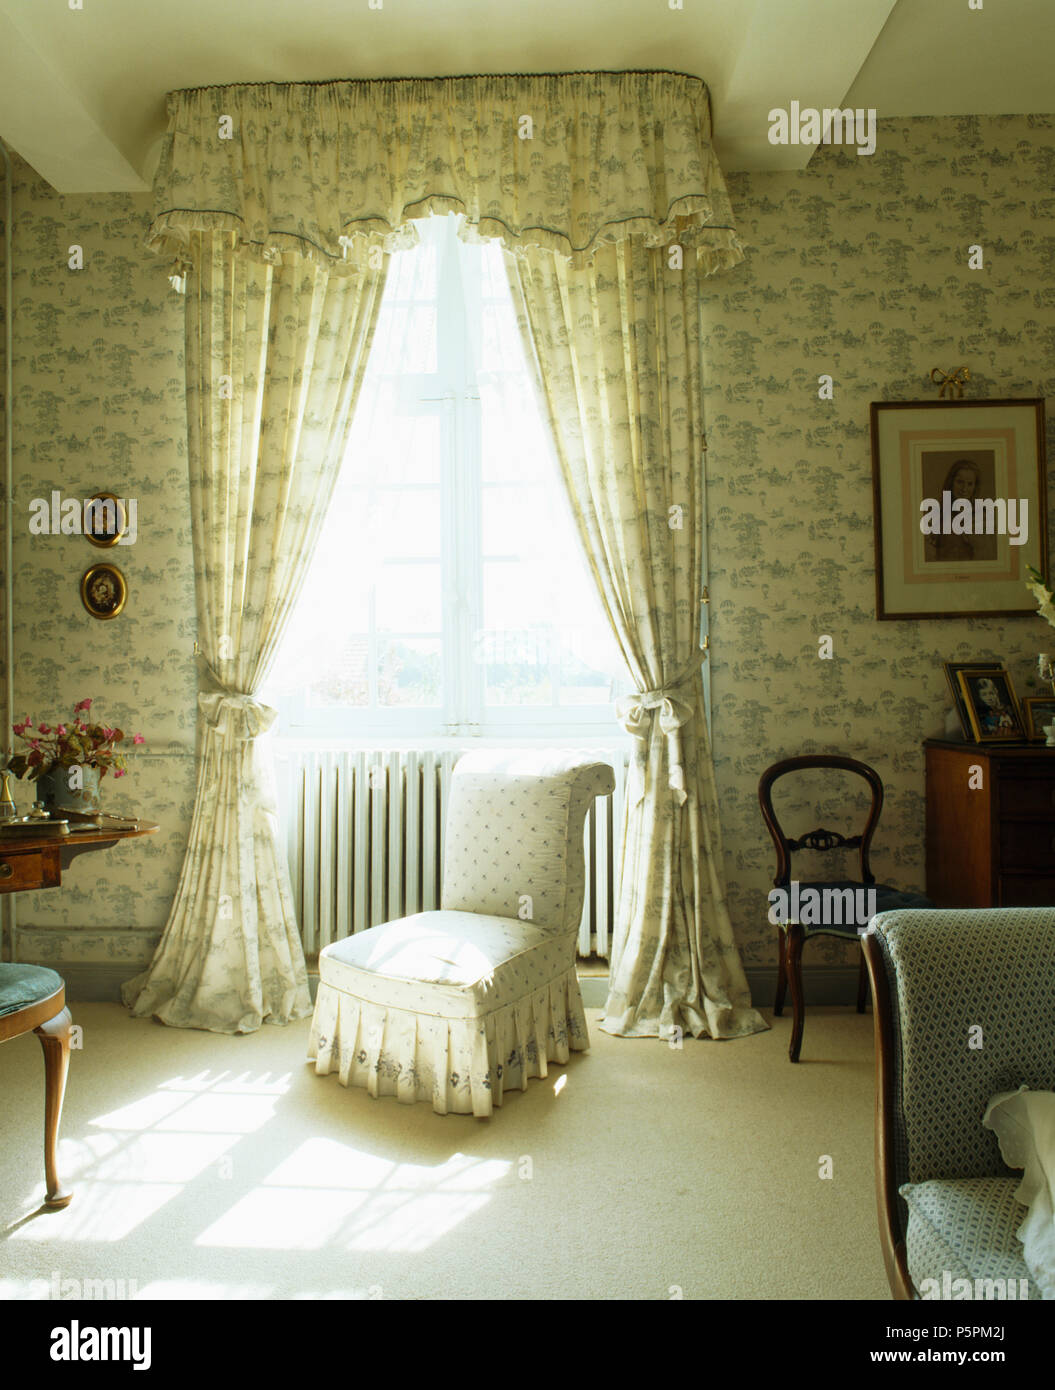 Co-ordinating curtains and wallpaper in a French counbtry ...